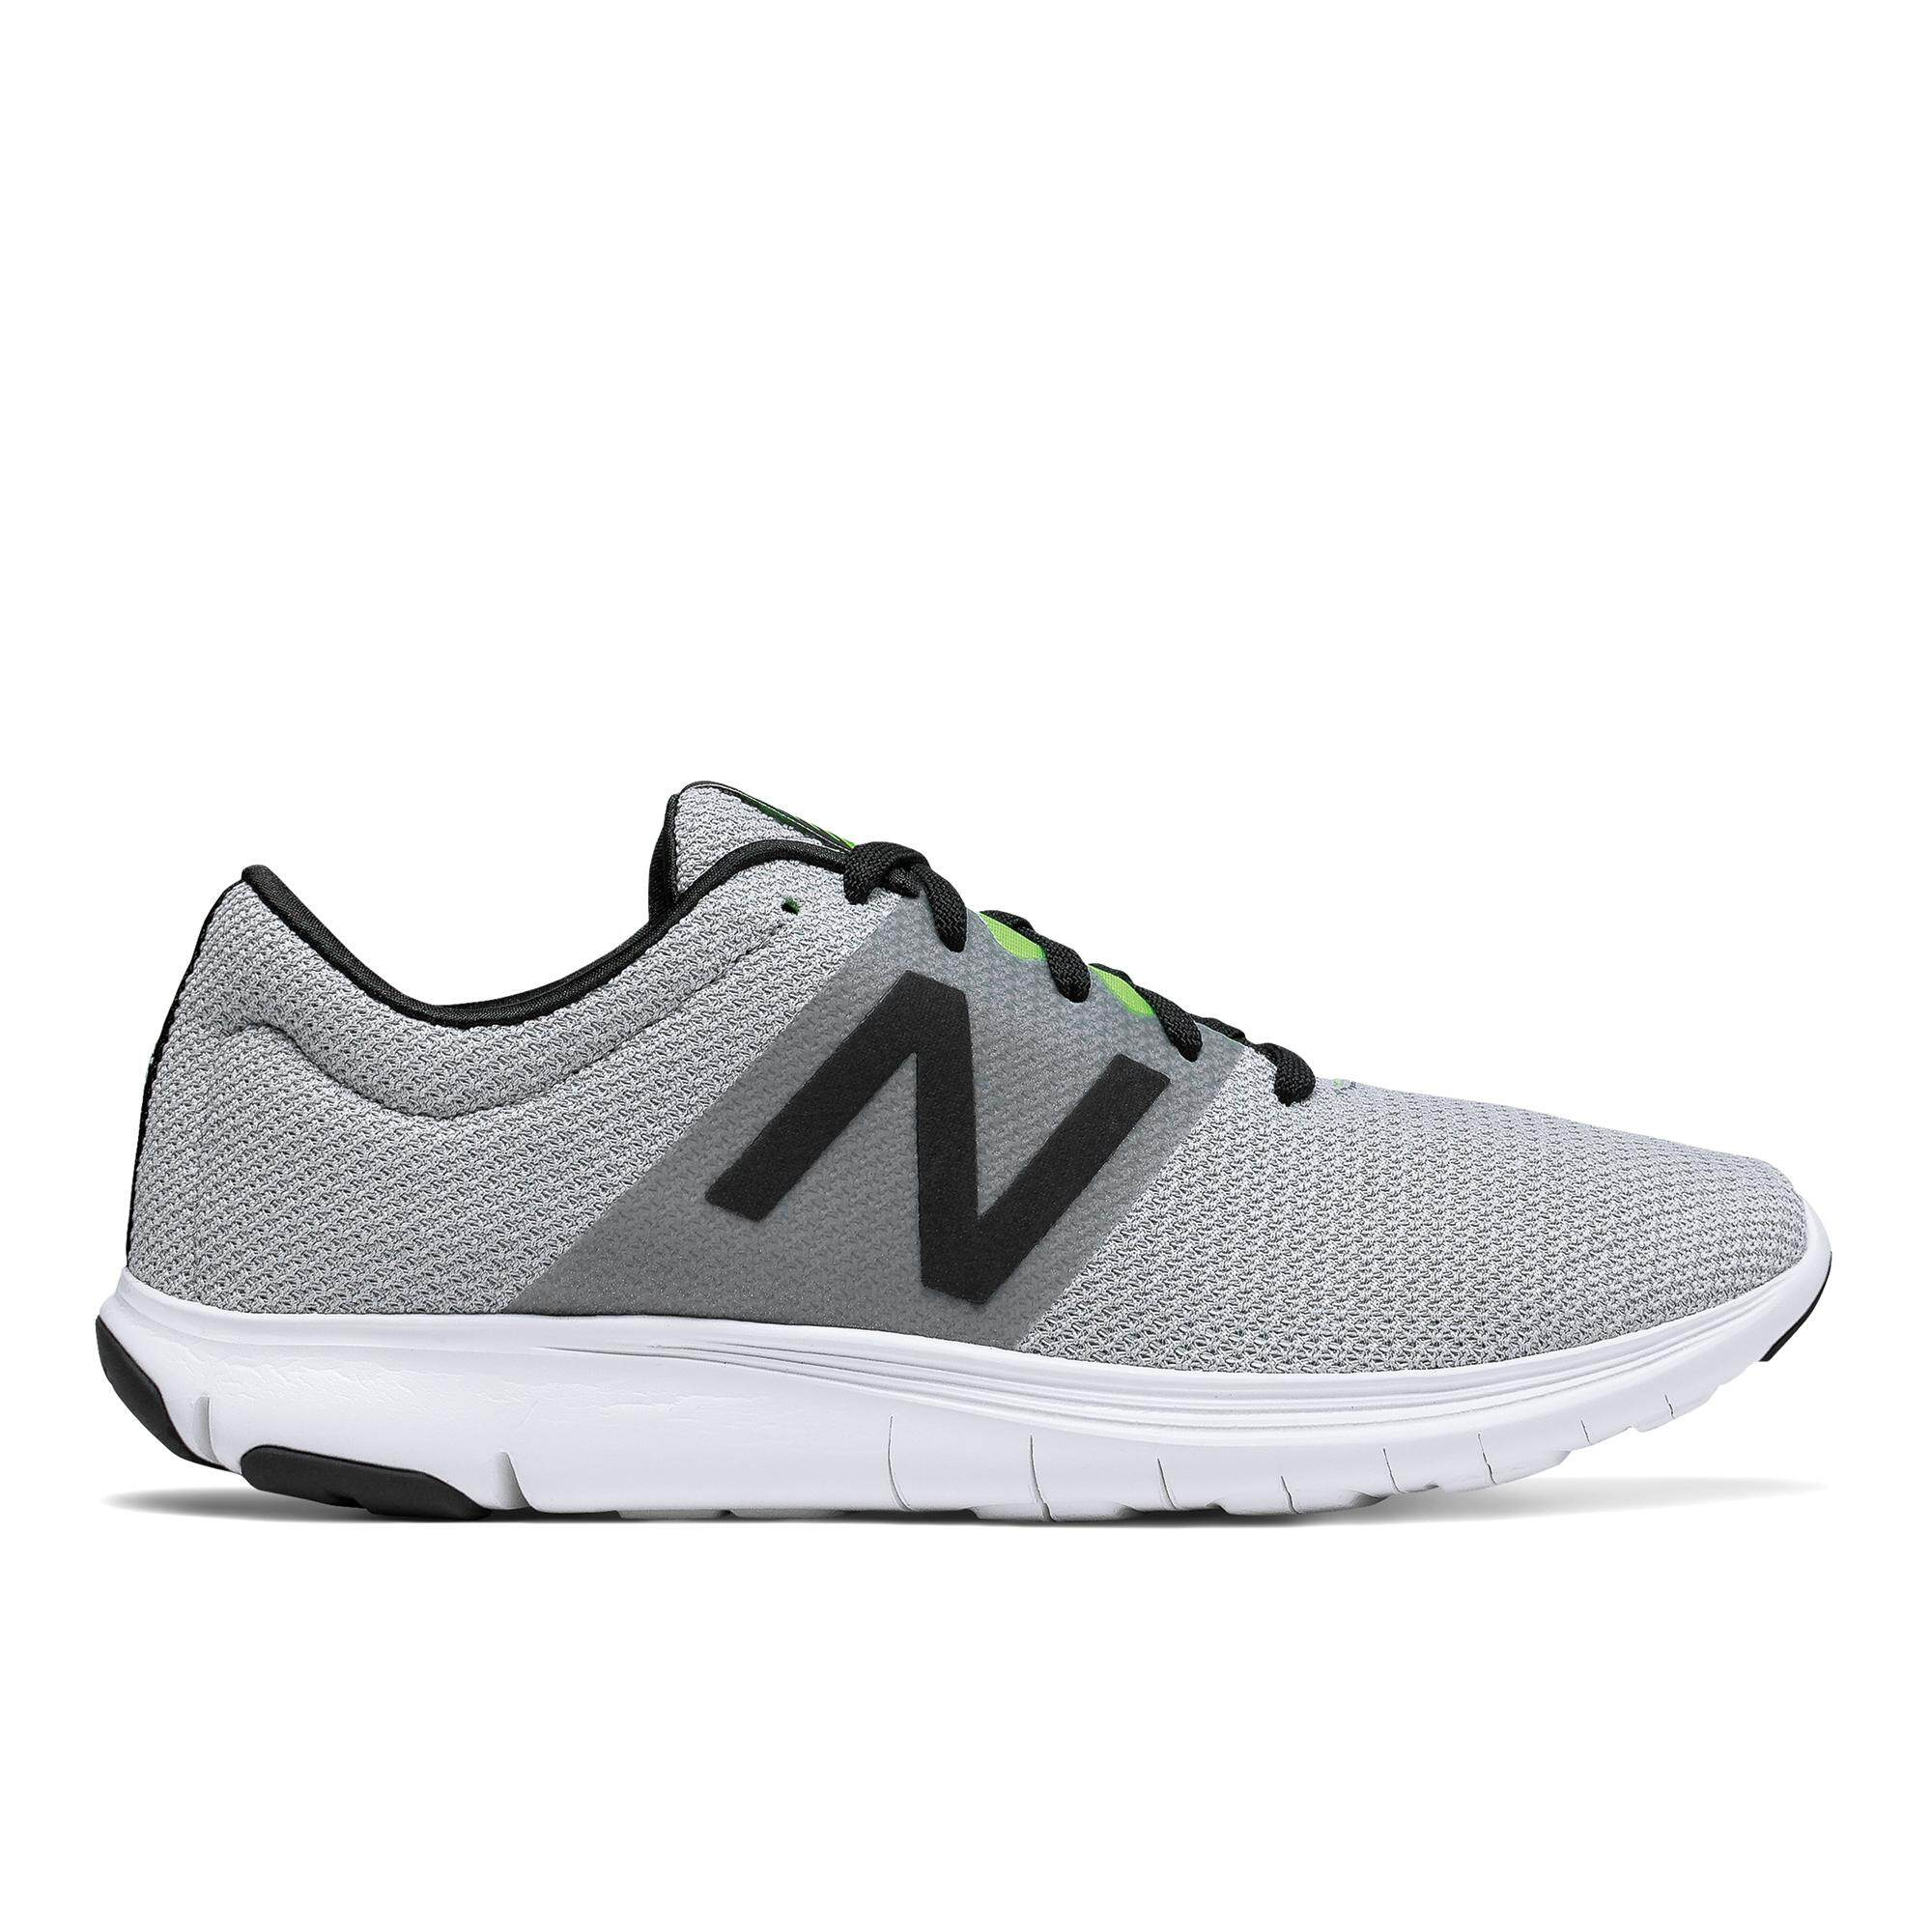 8f06a7966 New Balance Official Store - Buy New Balance Official Store at Best ...